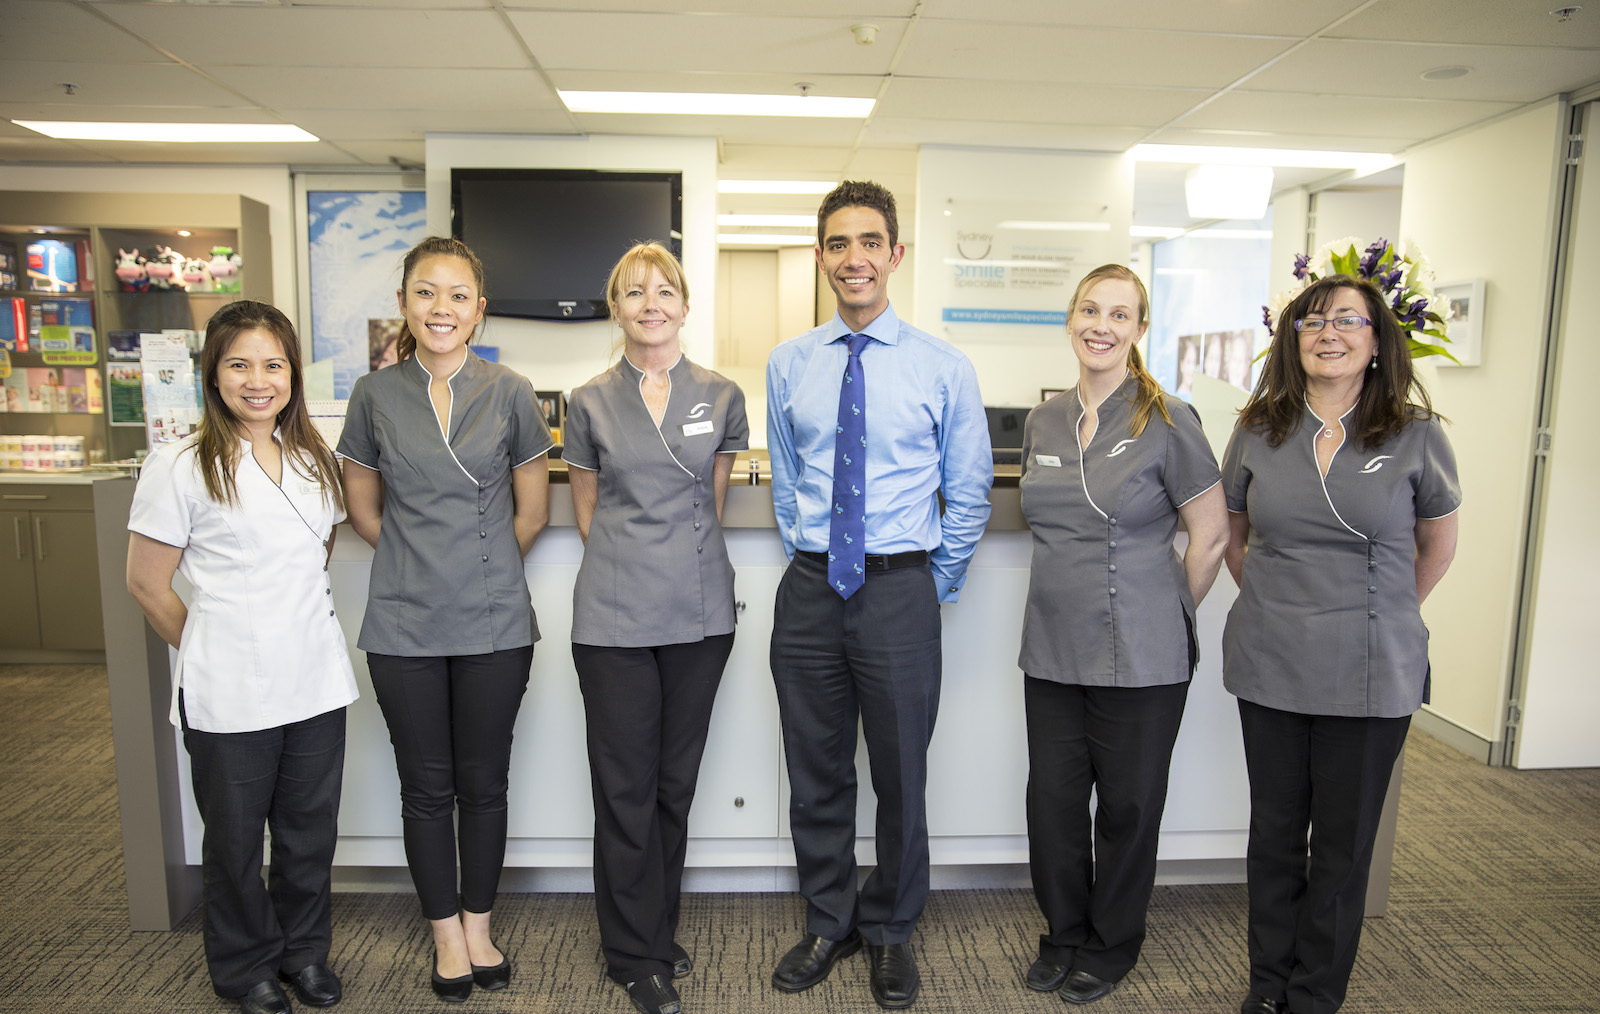 Chatswood orthodontics team